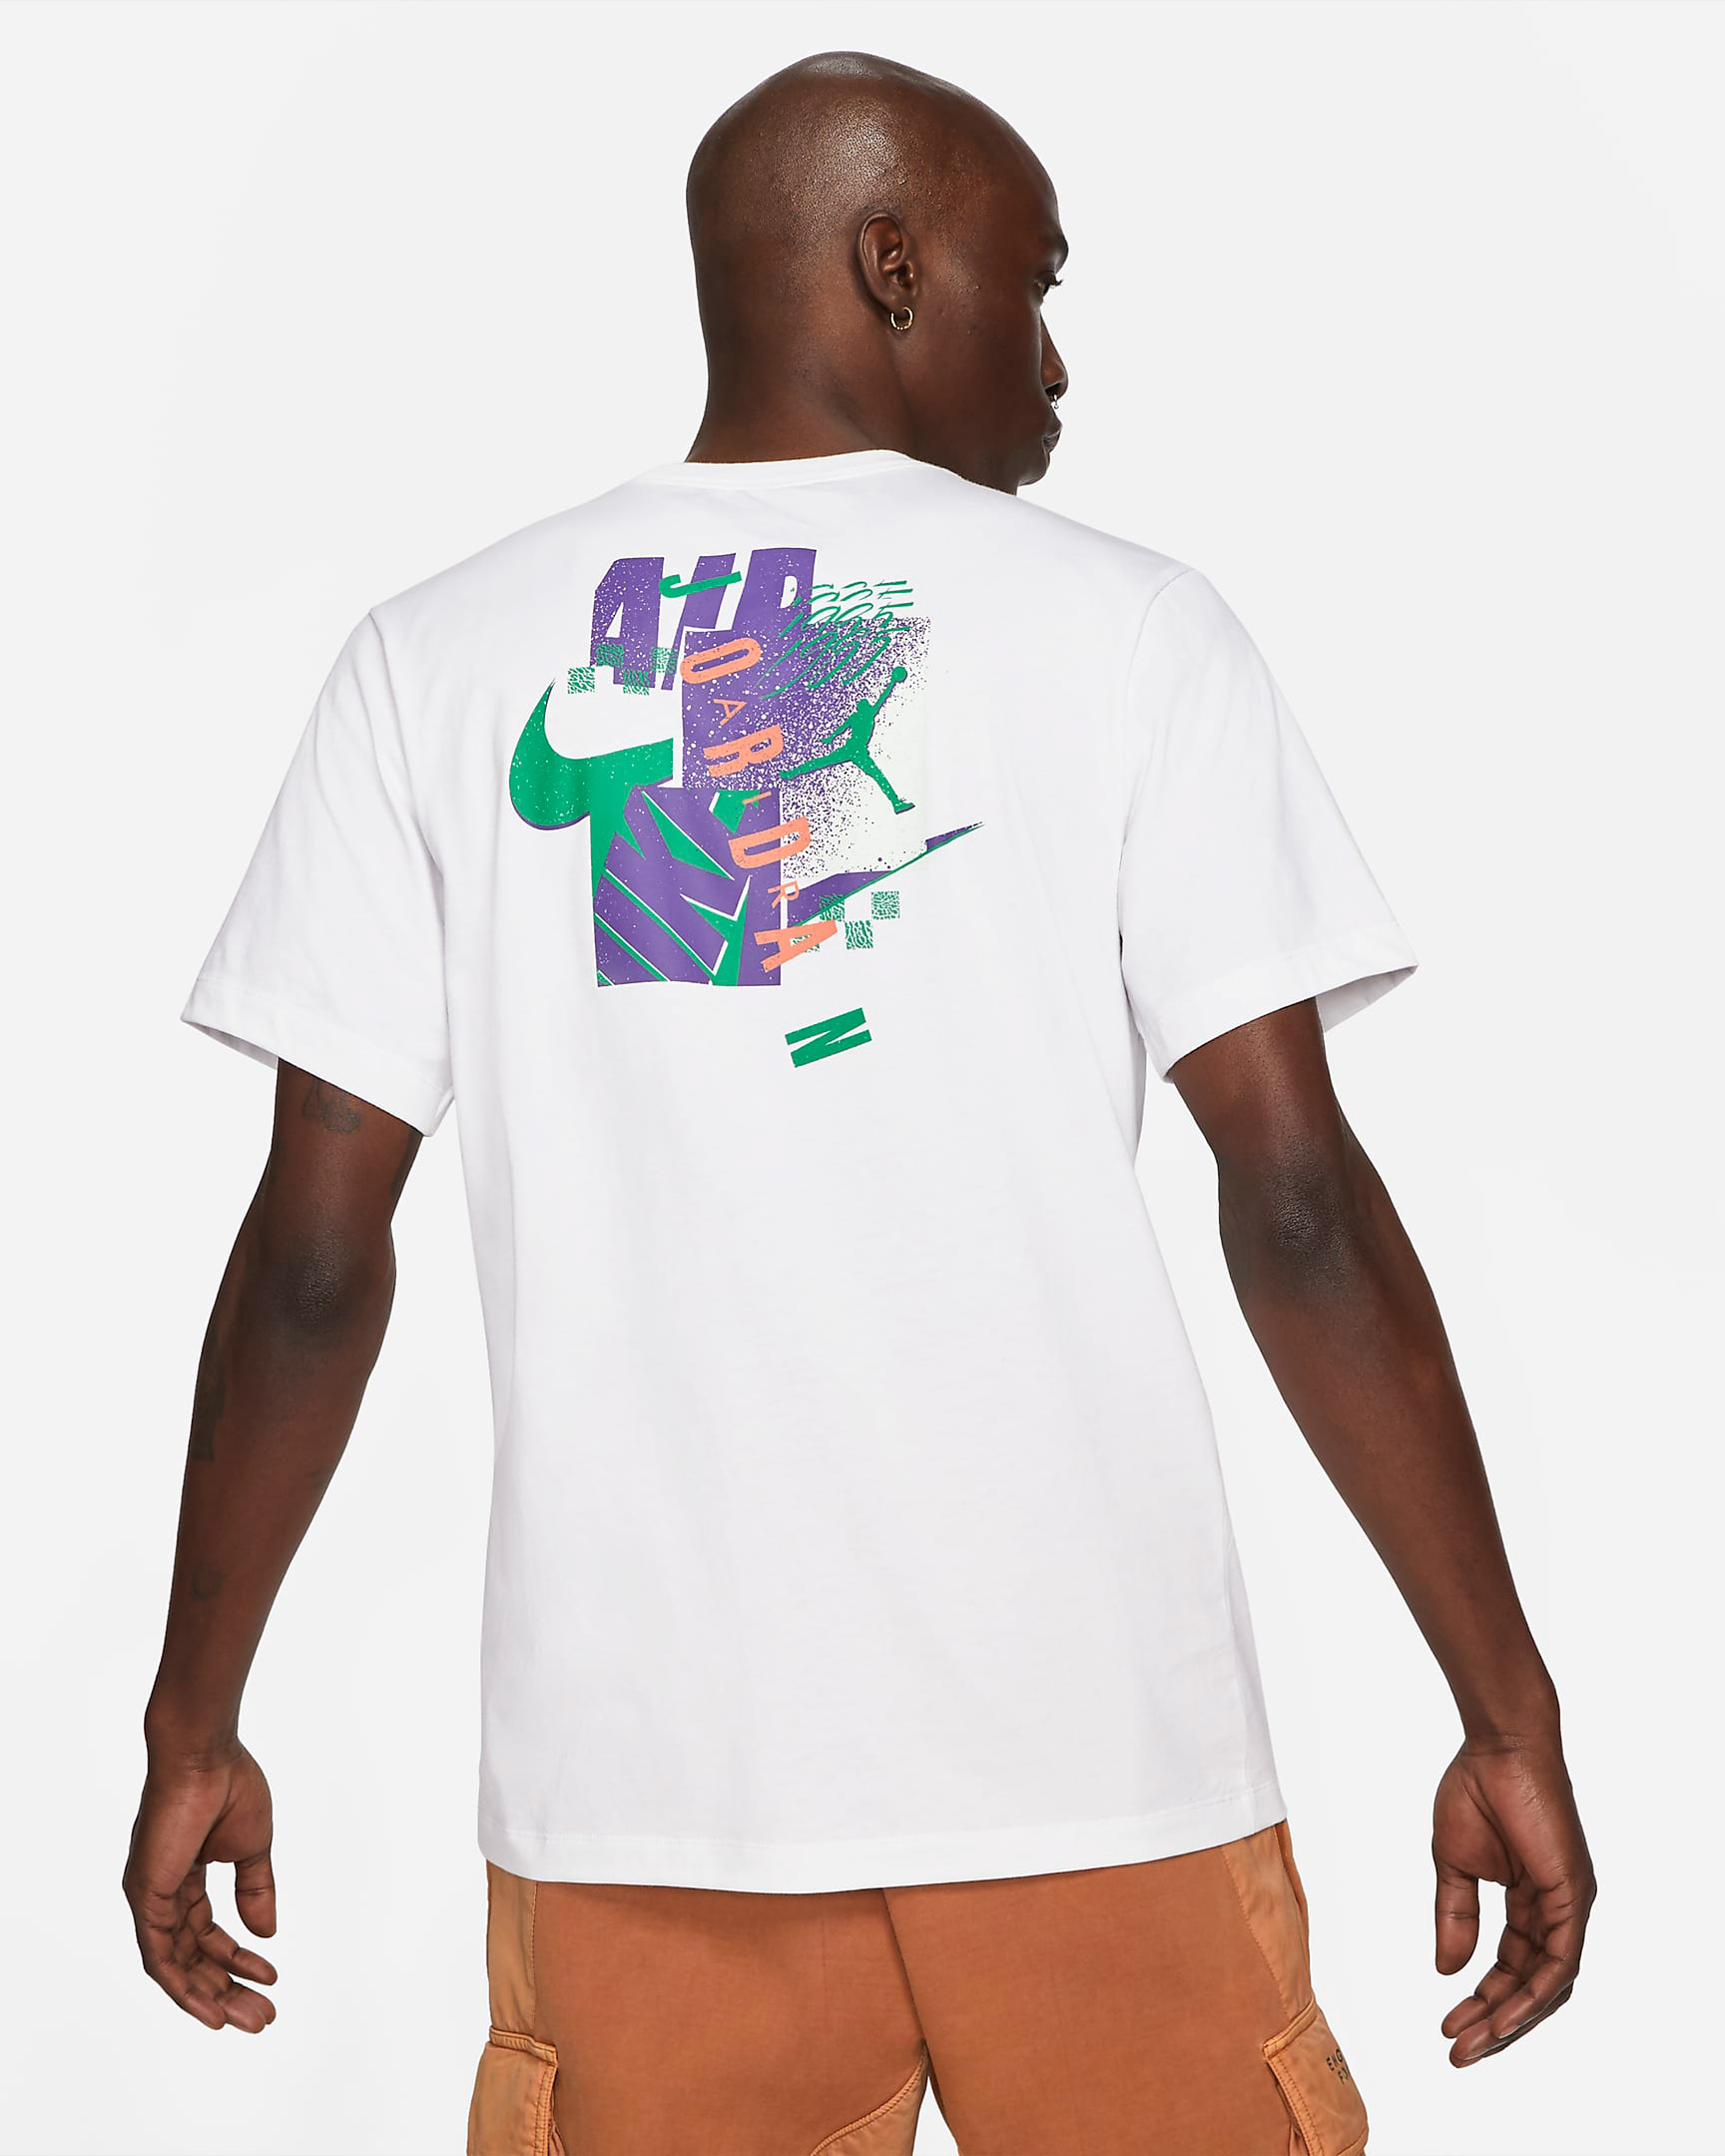 jordan-air-futura-shirt-white-purple-green-2